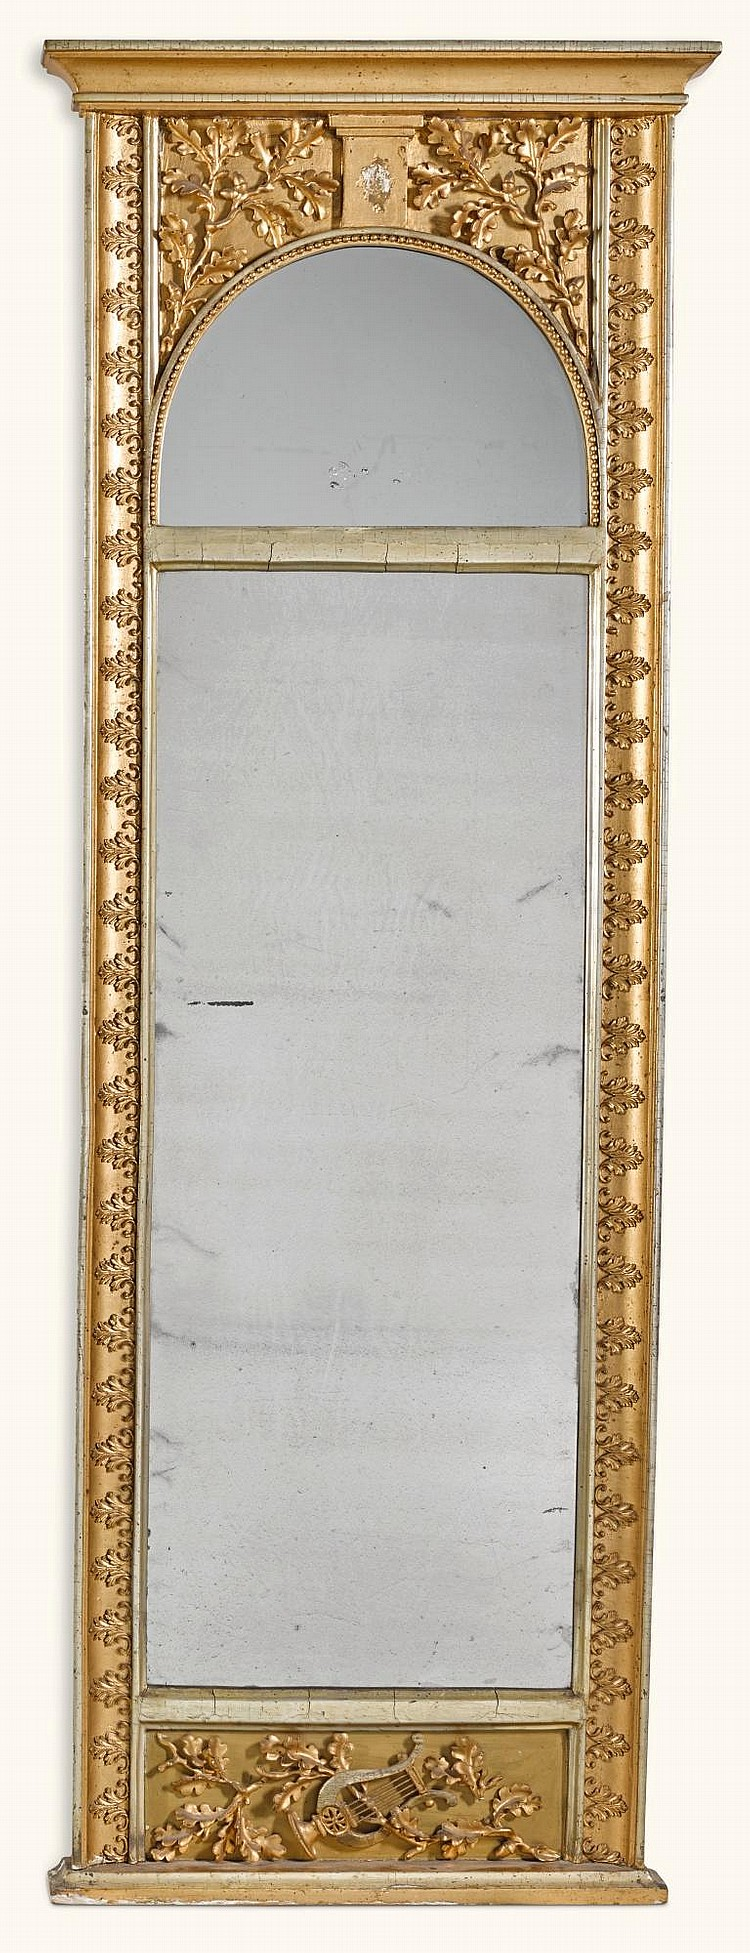 A NORTH GERMAN NEOCLASSICAL CARVED GILTWOOD AND SILVERED MIRROR EARLY 19TH CENTURY |